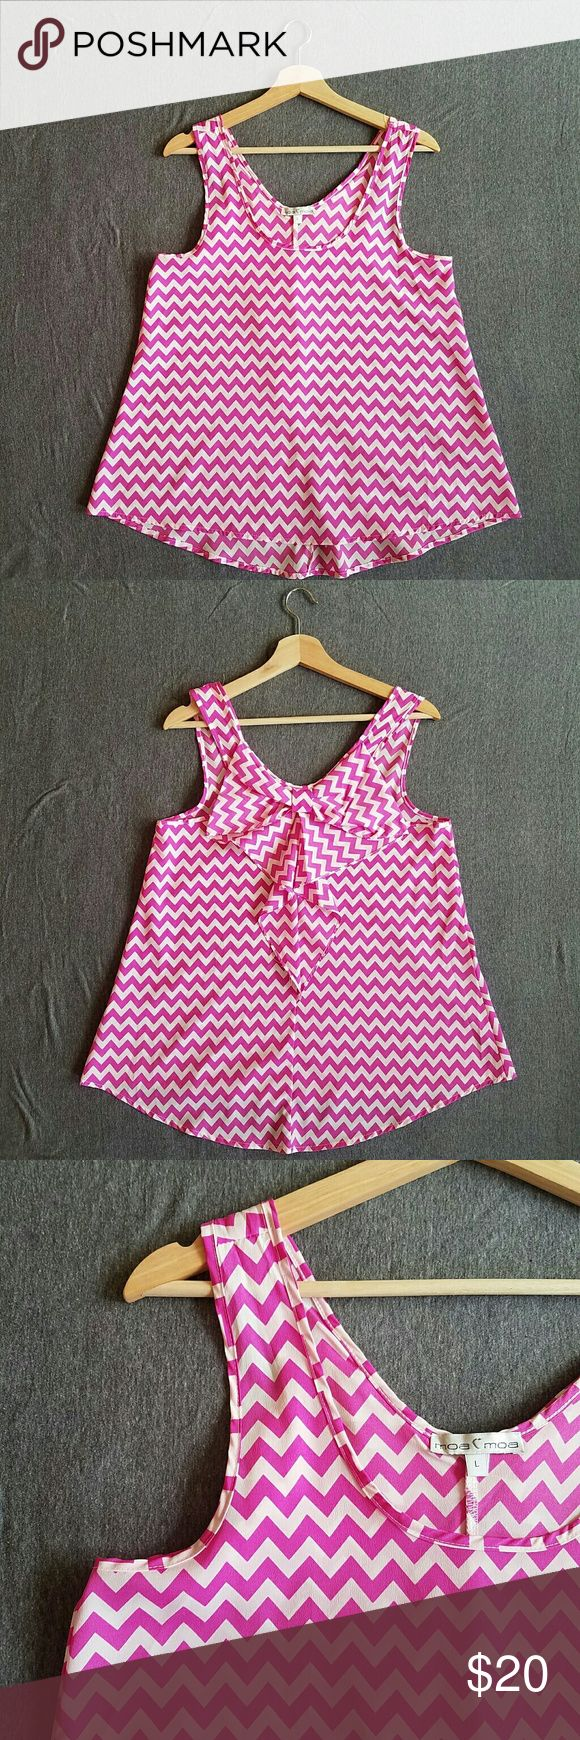 Pink Chevron Top with bow back NBW, but no tags Scoop cut loose tank top with bow on the back of the top Pink and white chevron pattern 100% polyester Moa Moa Tops